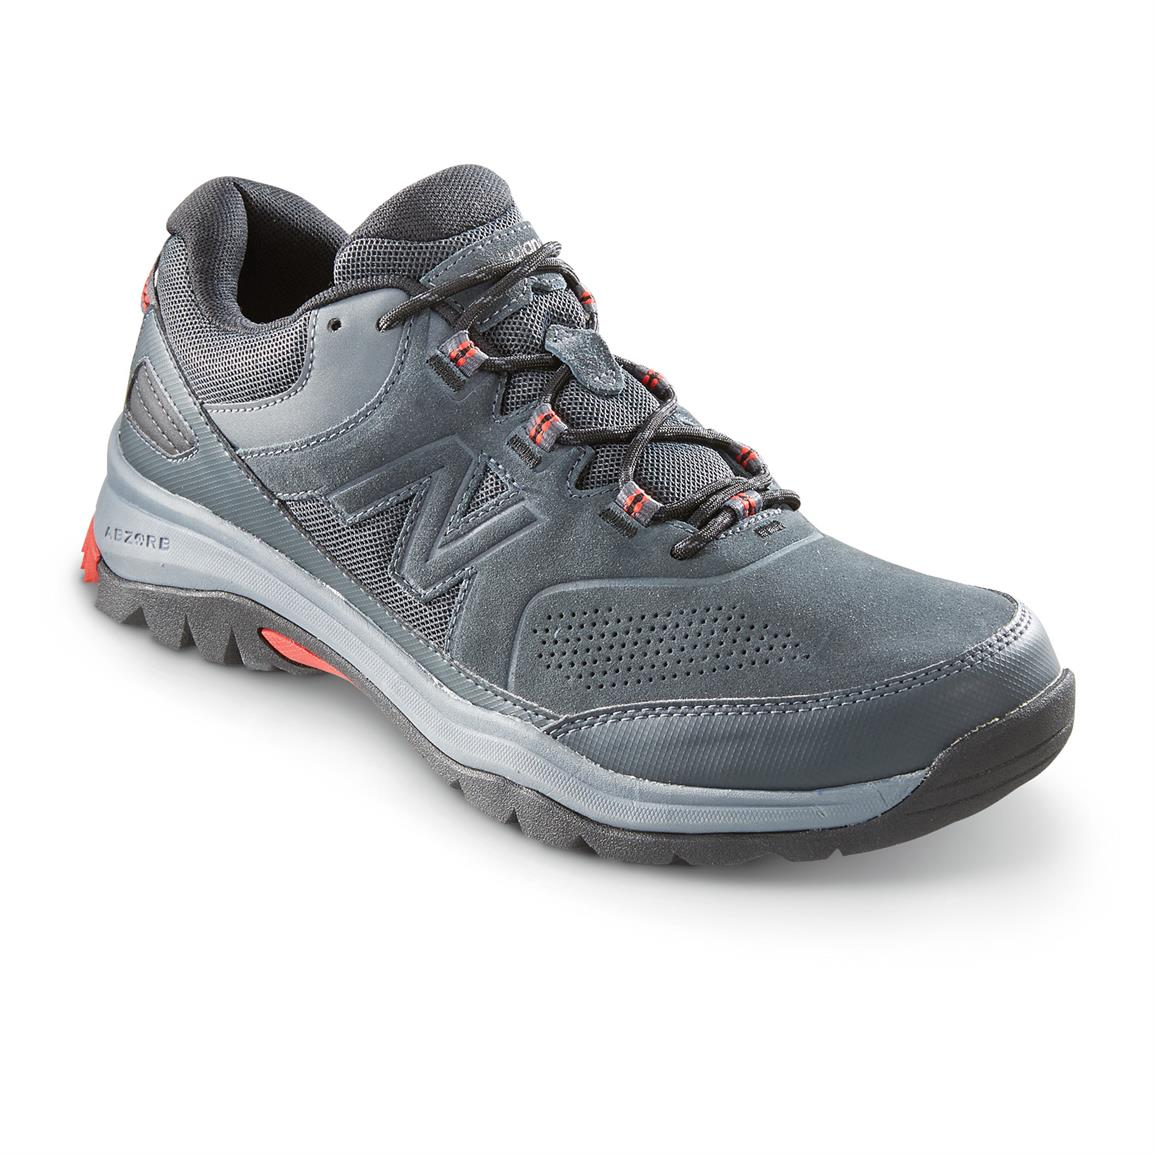 New Balance 769 Country Walker Shoes, Gray / Red